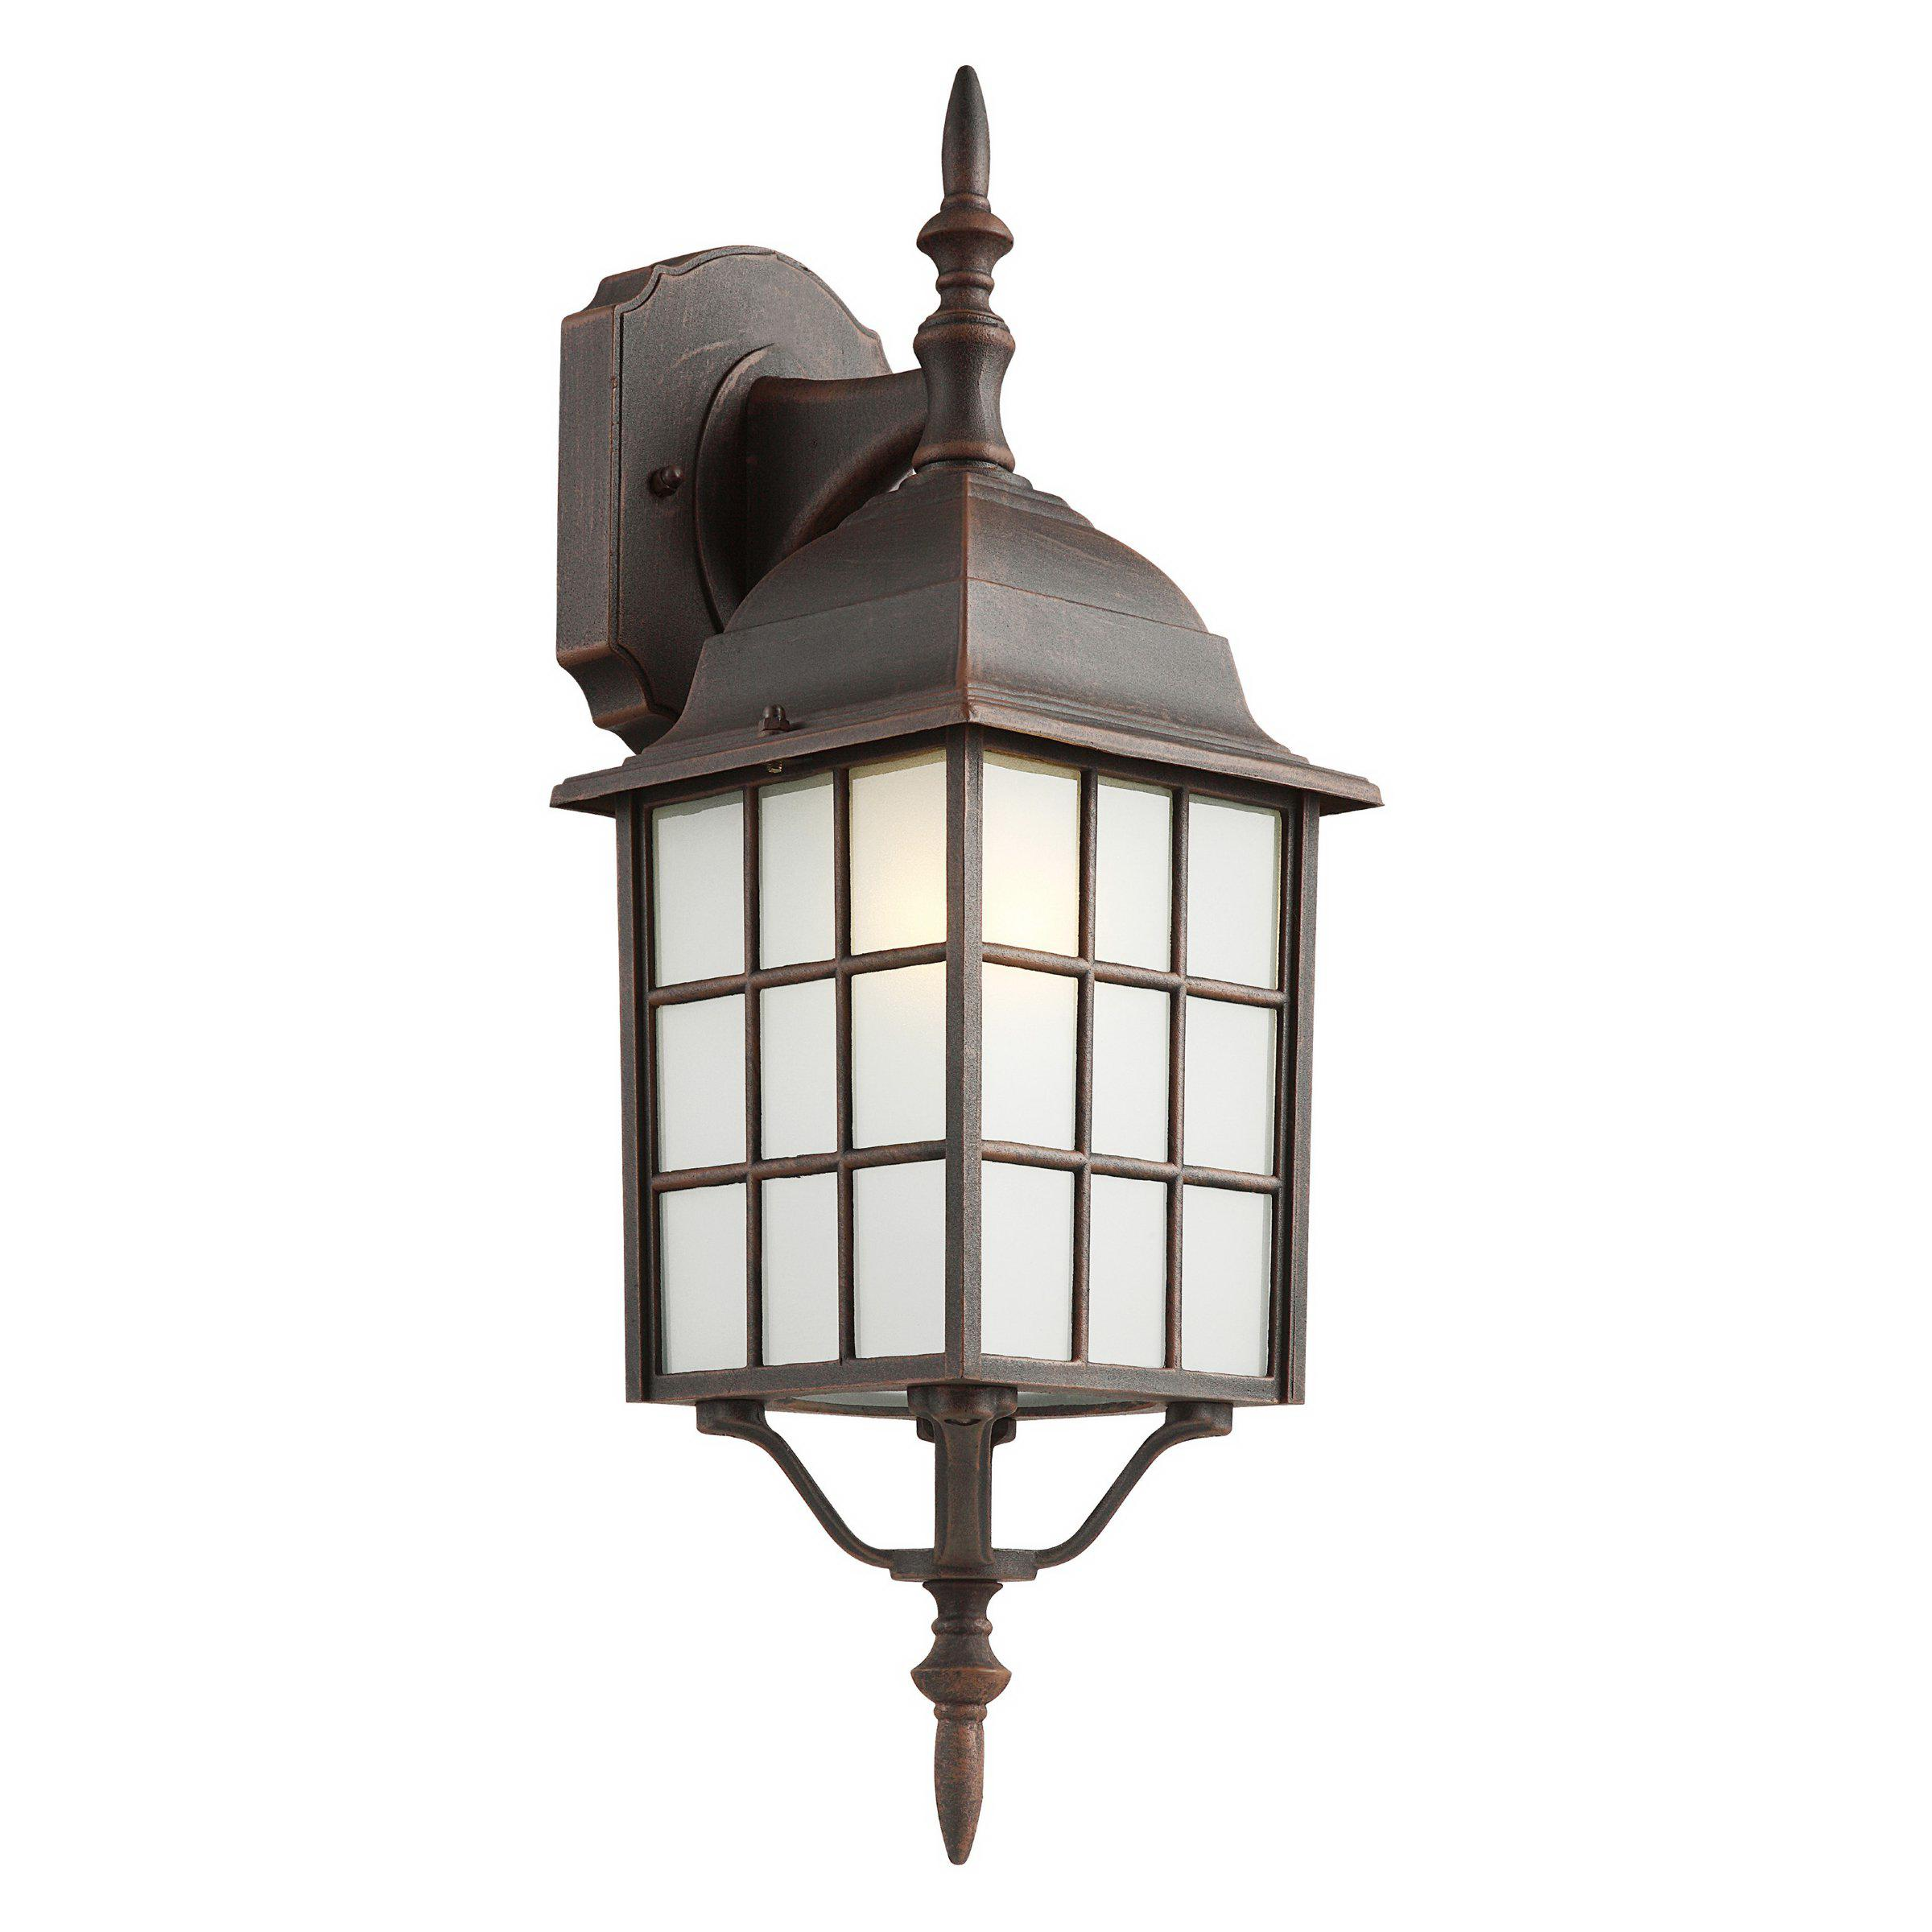 Transglobe 1Lt Wall Down Outd Square CB-4420-1 RT